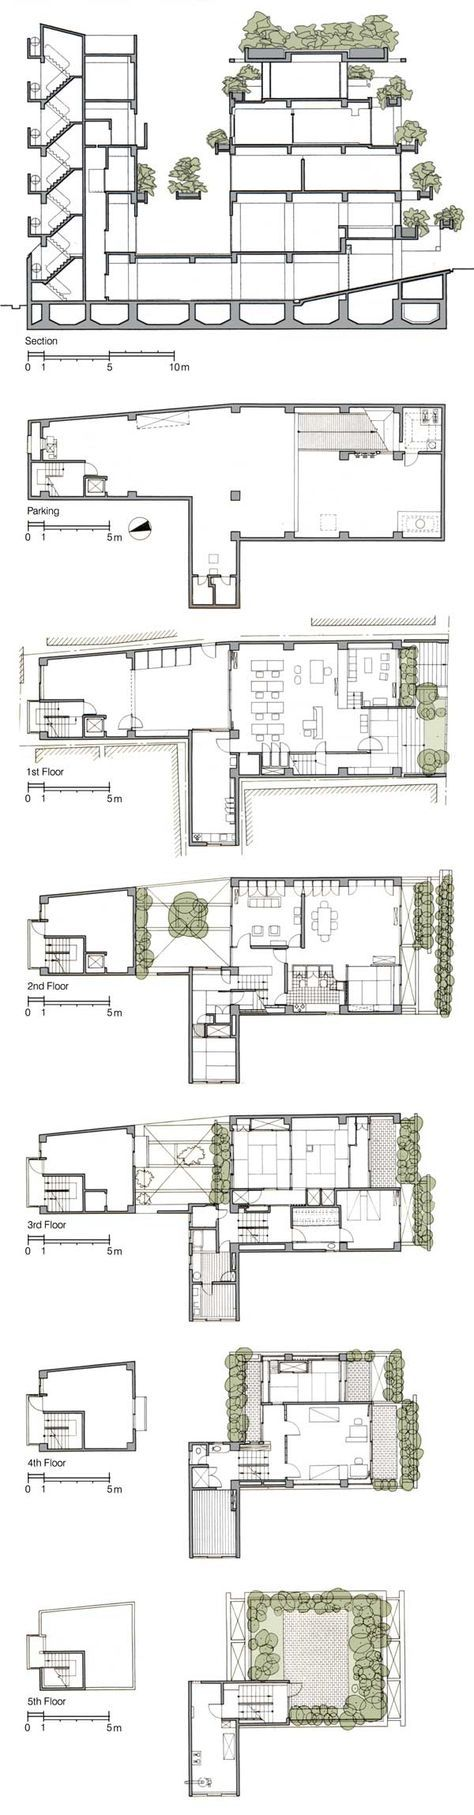 New House Drawing Architecture Floor Plans Ideas Floor Plans Tadao Ando How To Plan